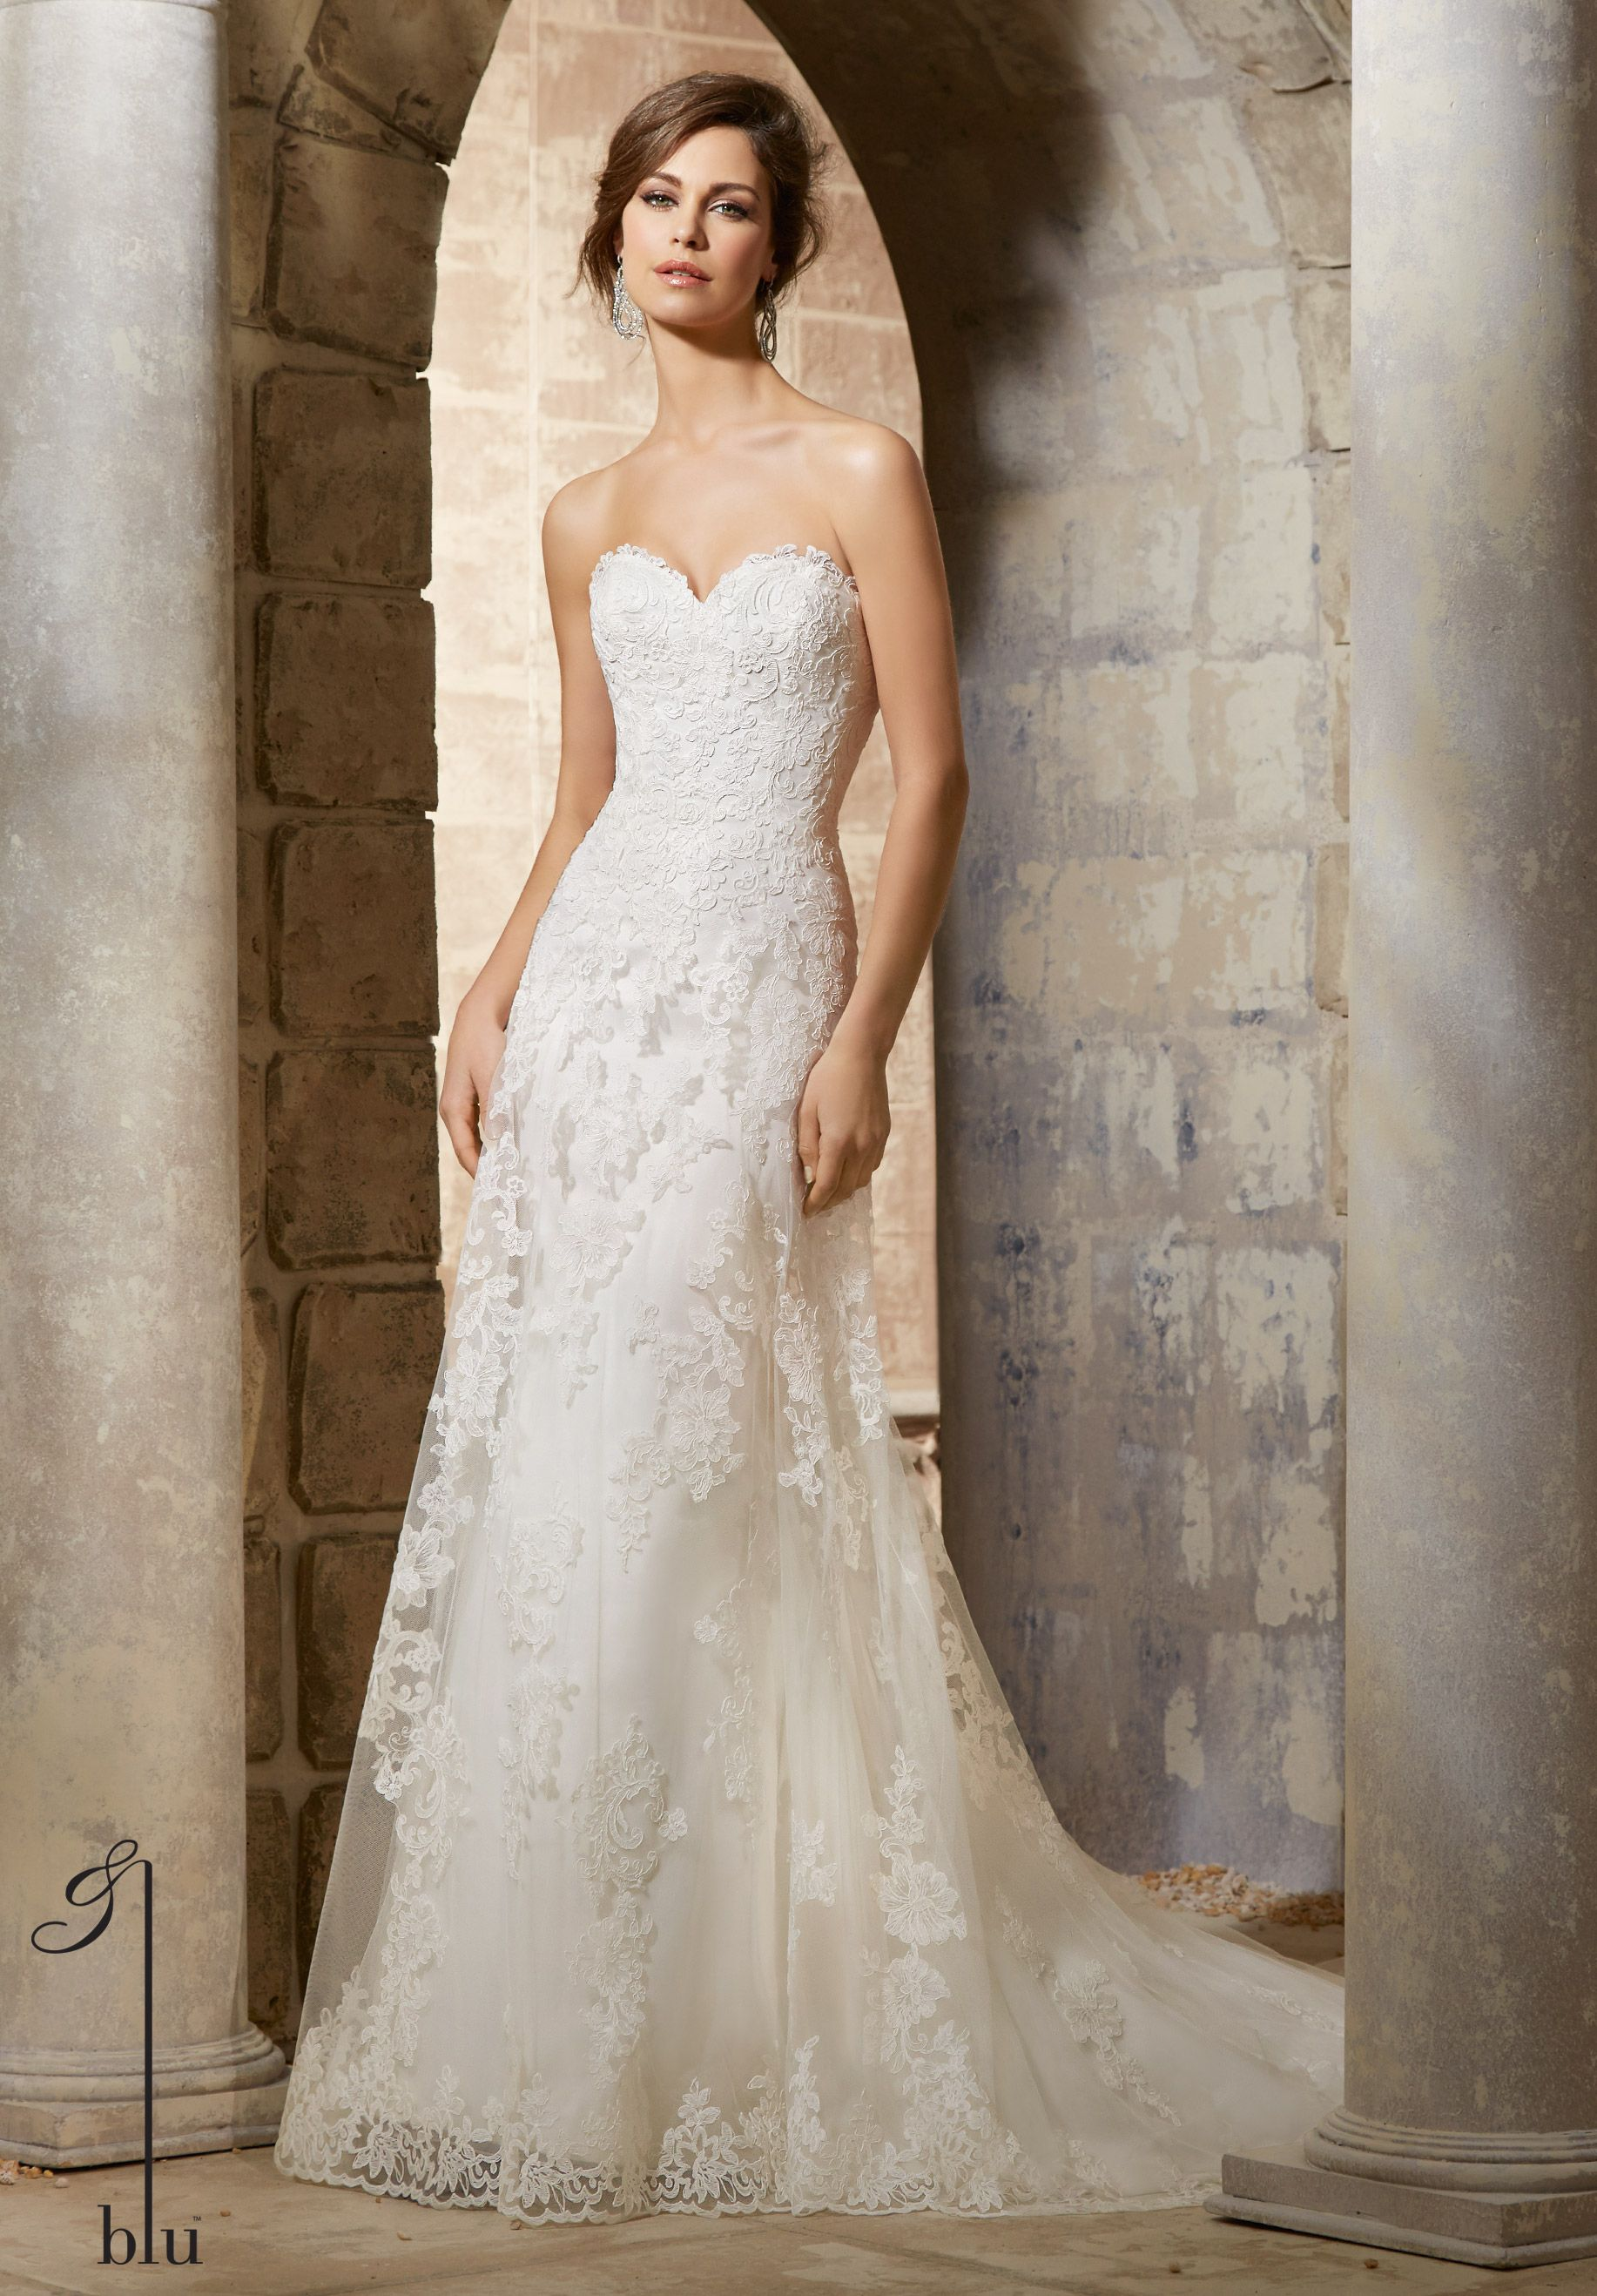 5367 wedding gowns dresses elegant alencon lace appliques on soft net gown with scalloped hemline